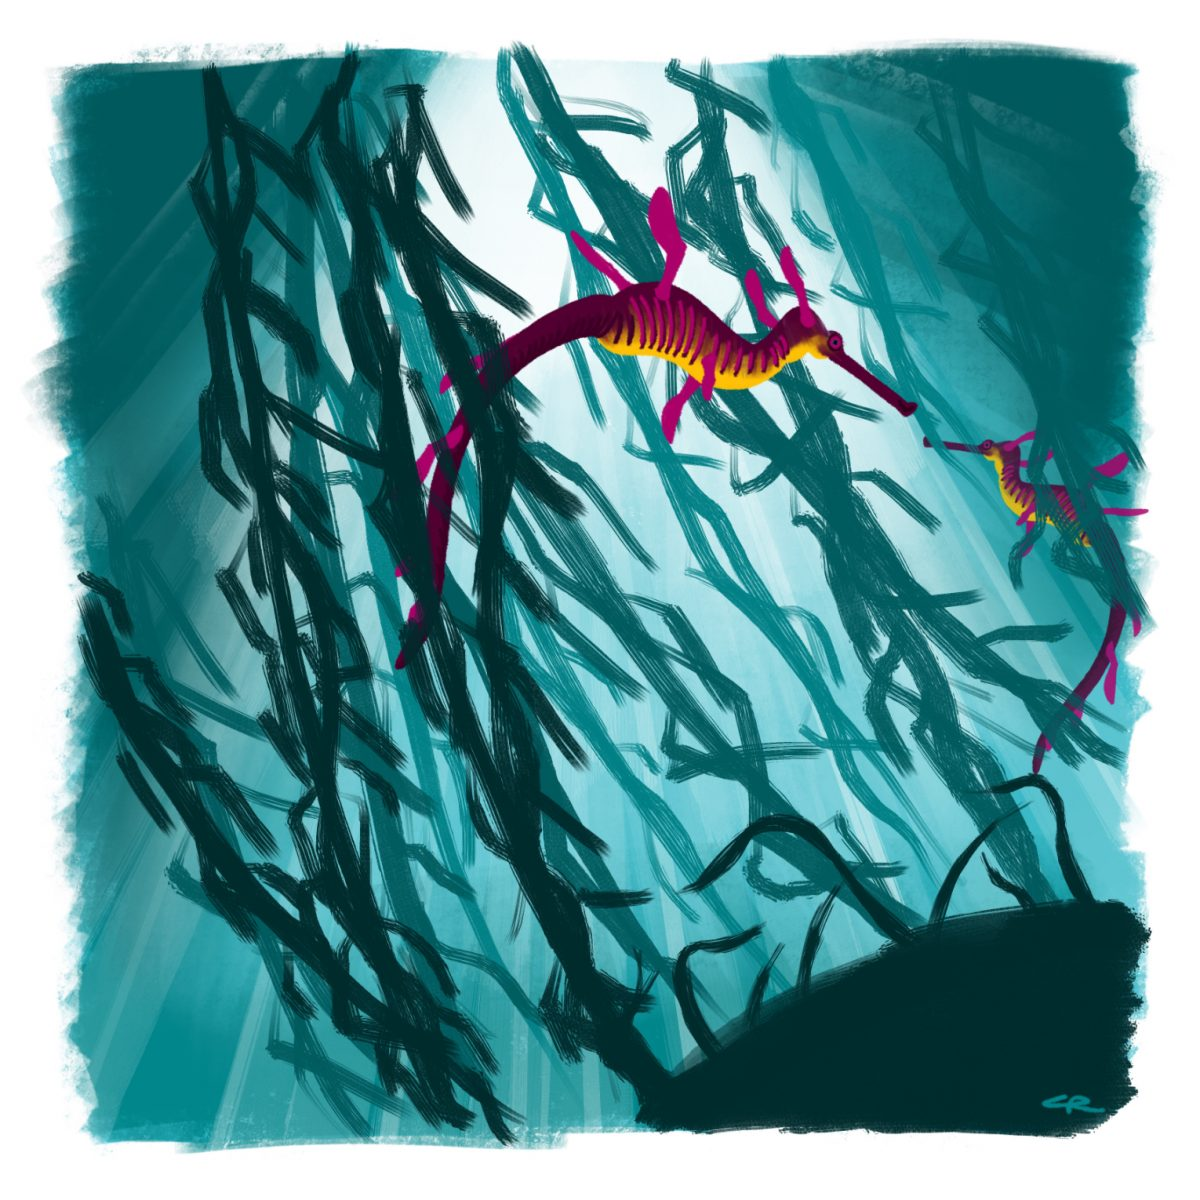 An illustration of two sea dragons swimming through seaweed